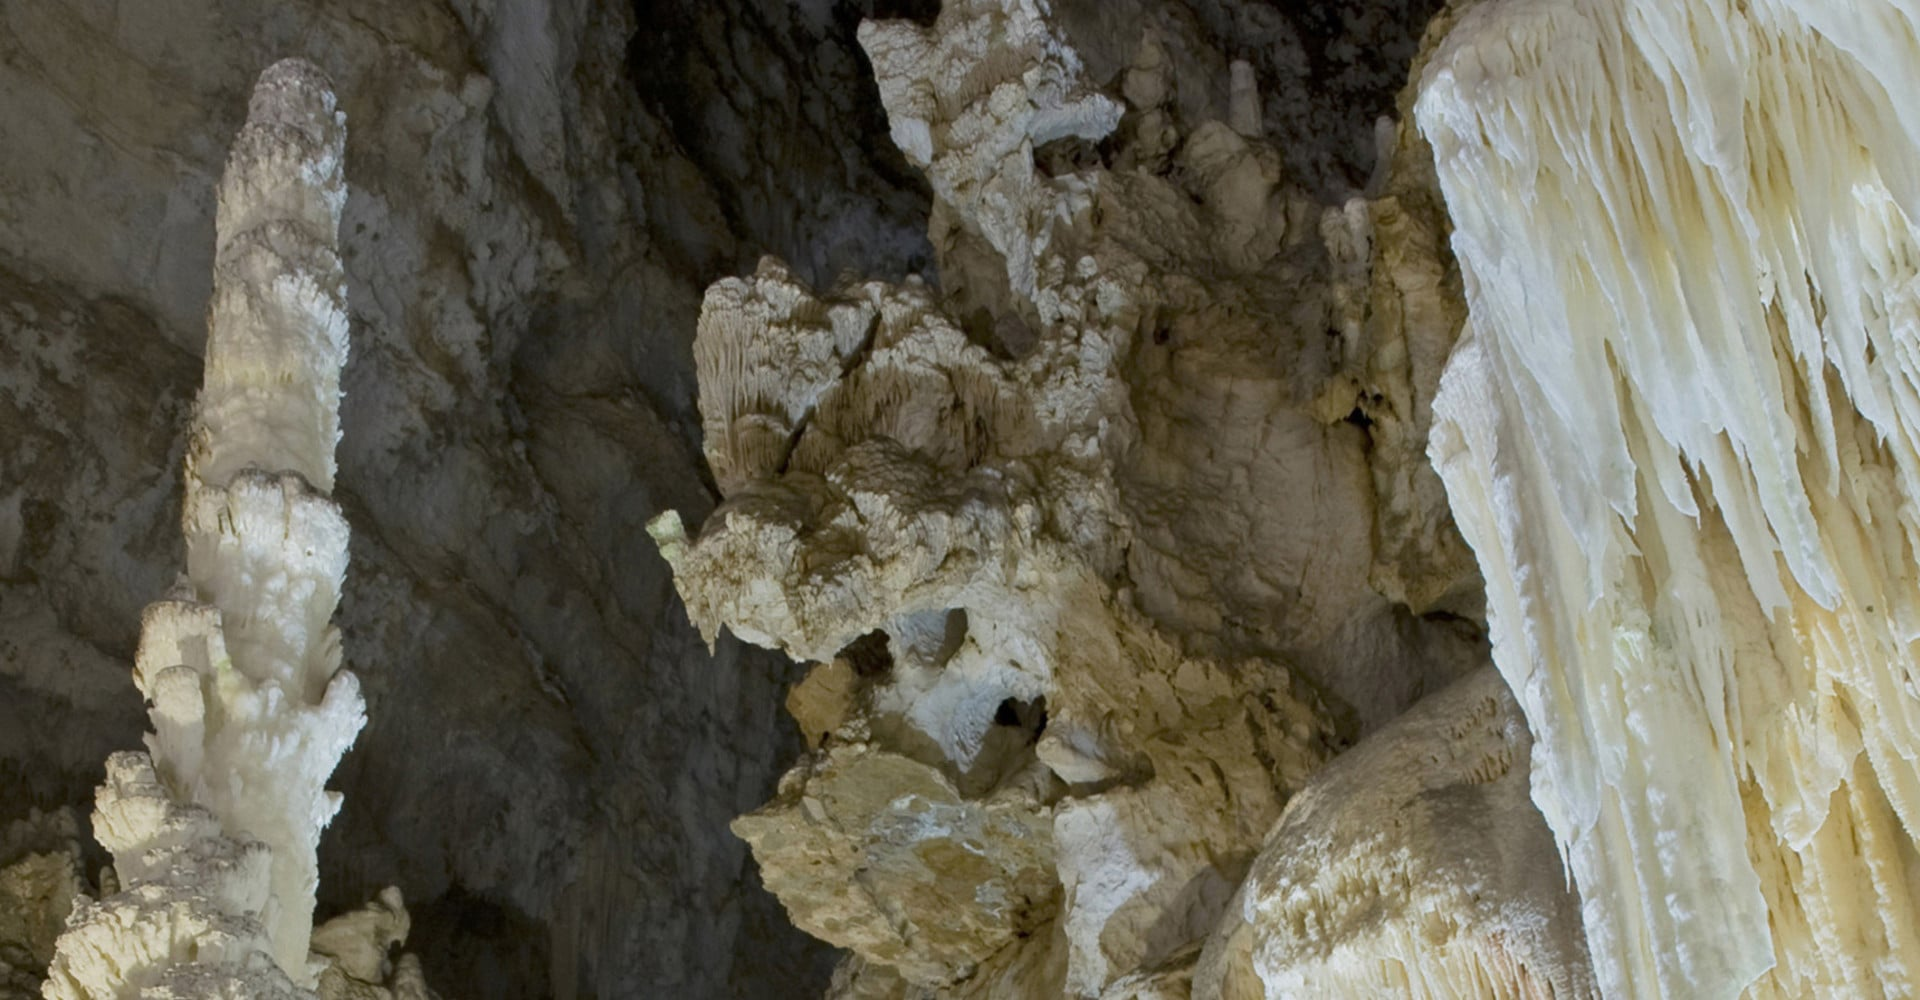 The caves of Frasassi